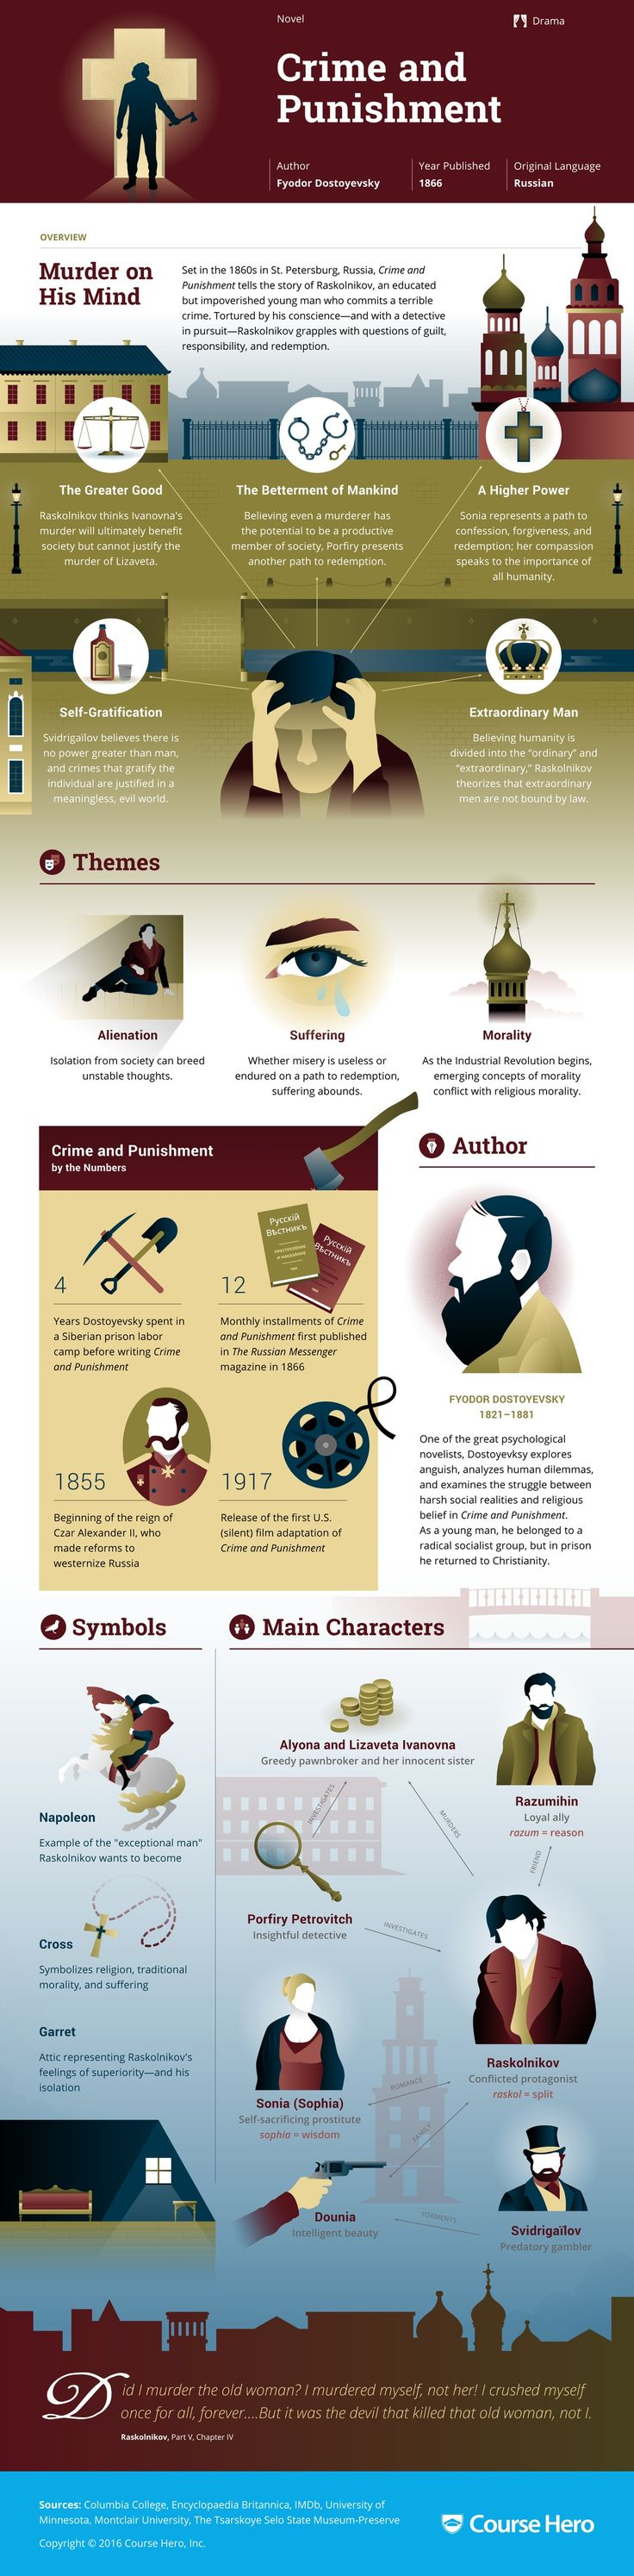 Pinterest - mutinelolita - Crime and Punishment Infographic | Course Hero